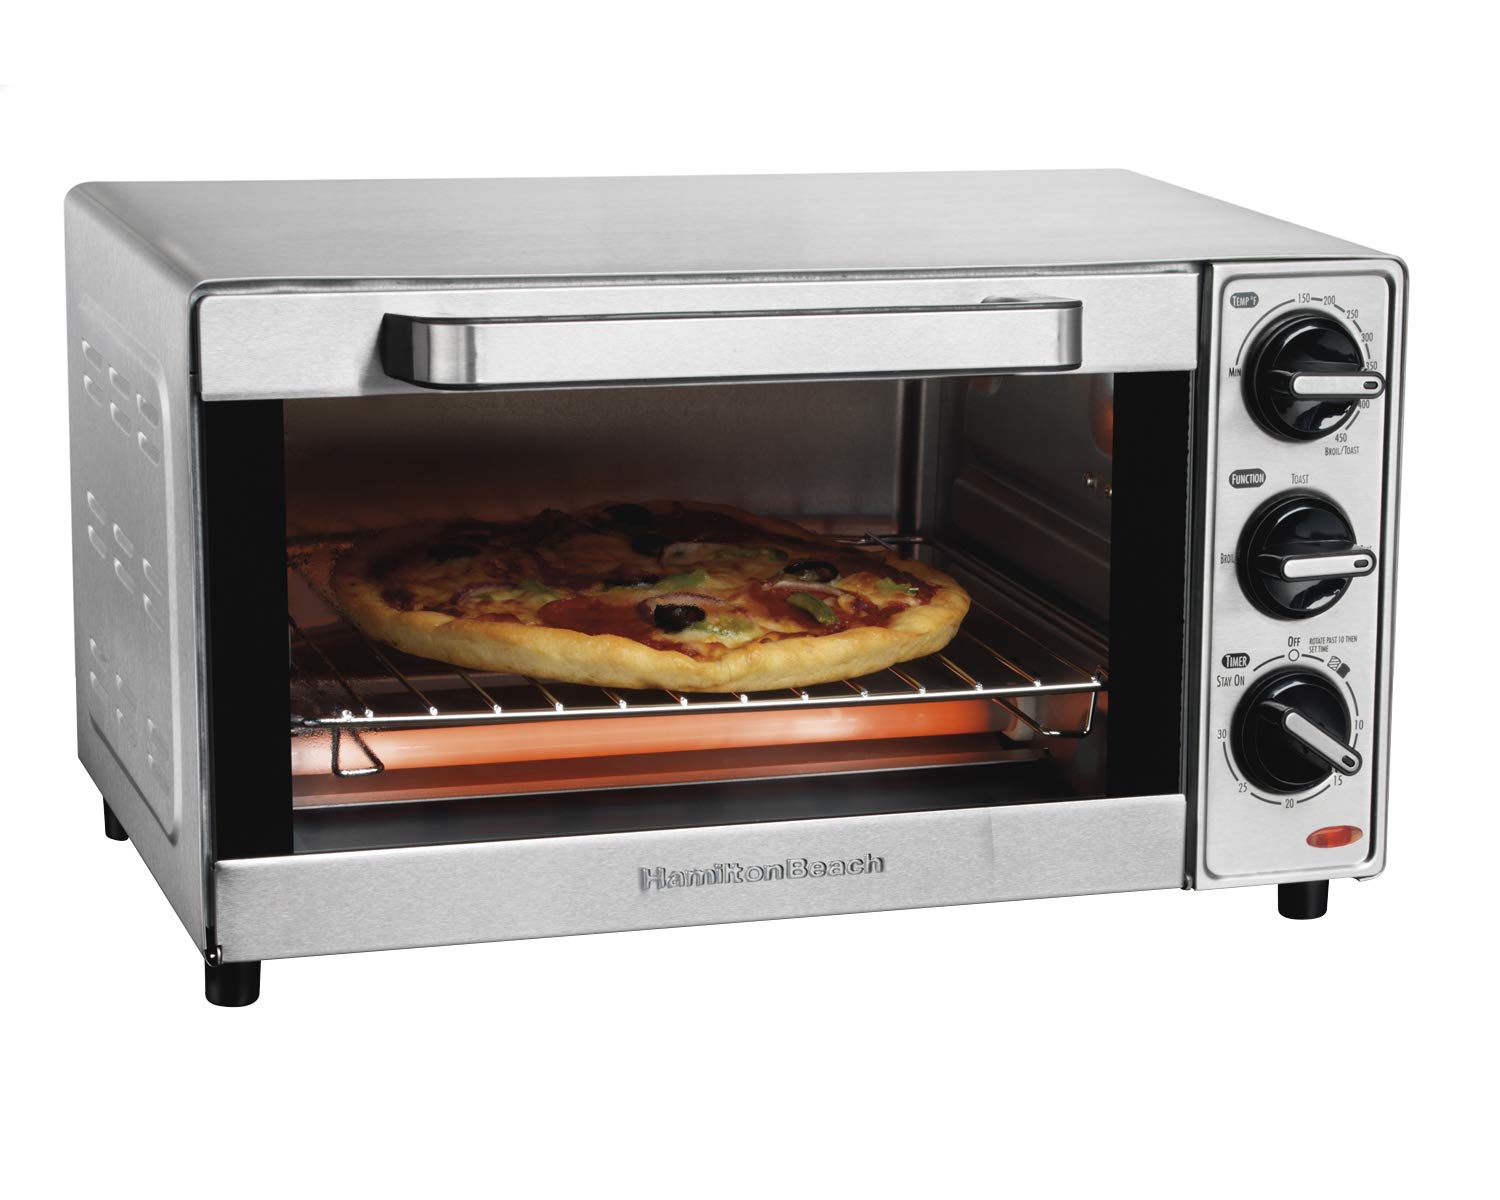 Hamilton Beach 31401 Toaster Oven, Pizza Maker, Large Capacity, Stainless Steel by Hamilton Beach